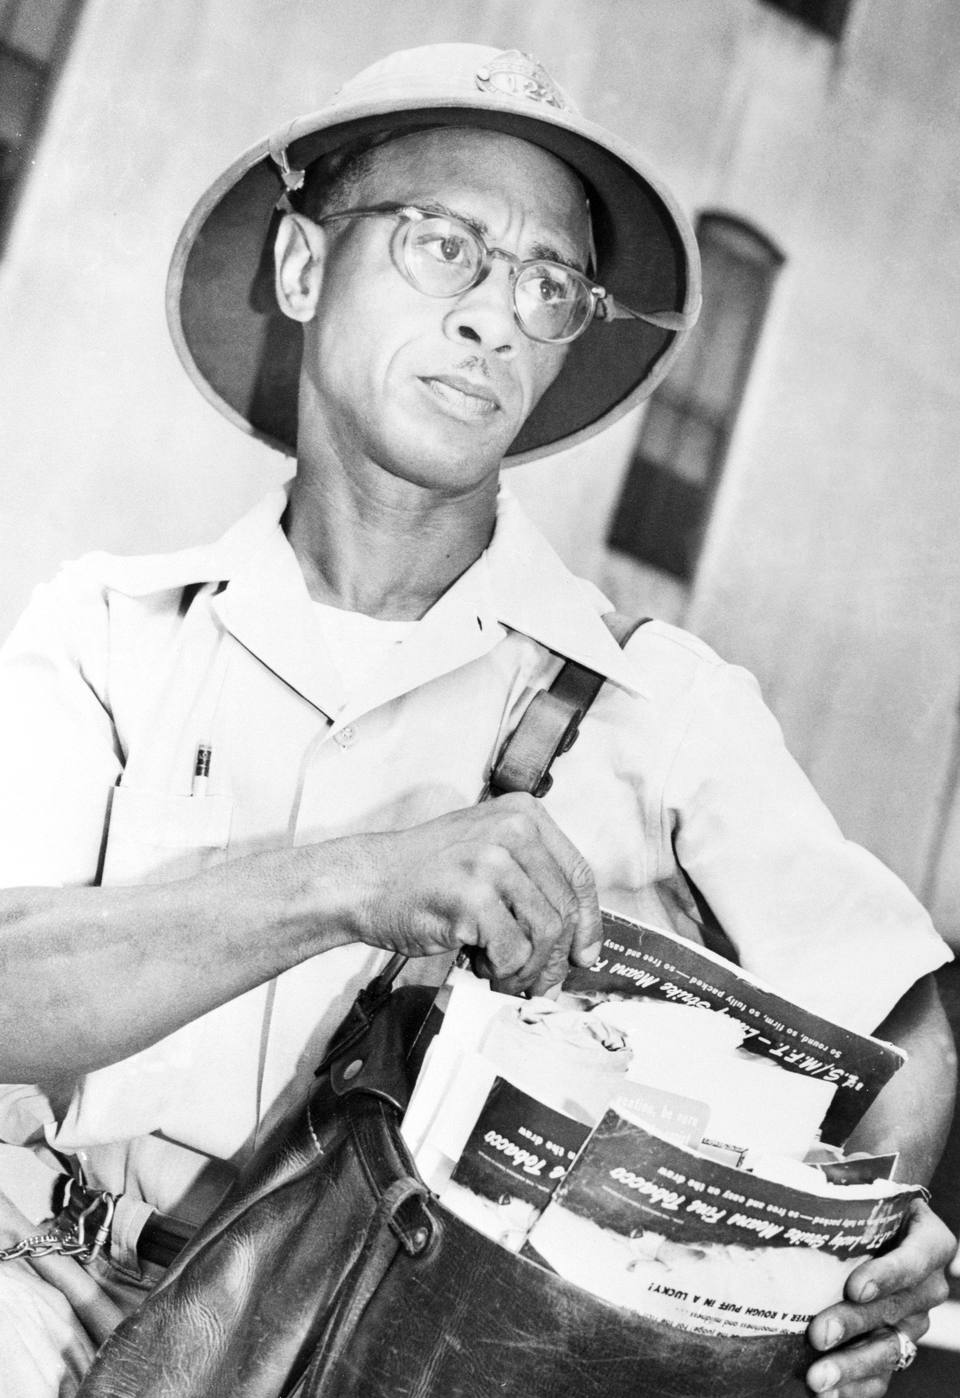 Mail Carrier and Civil Rights Activists Heman Sweatt